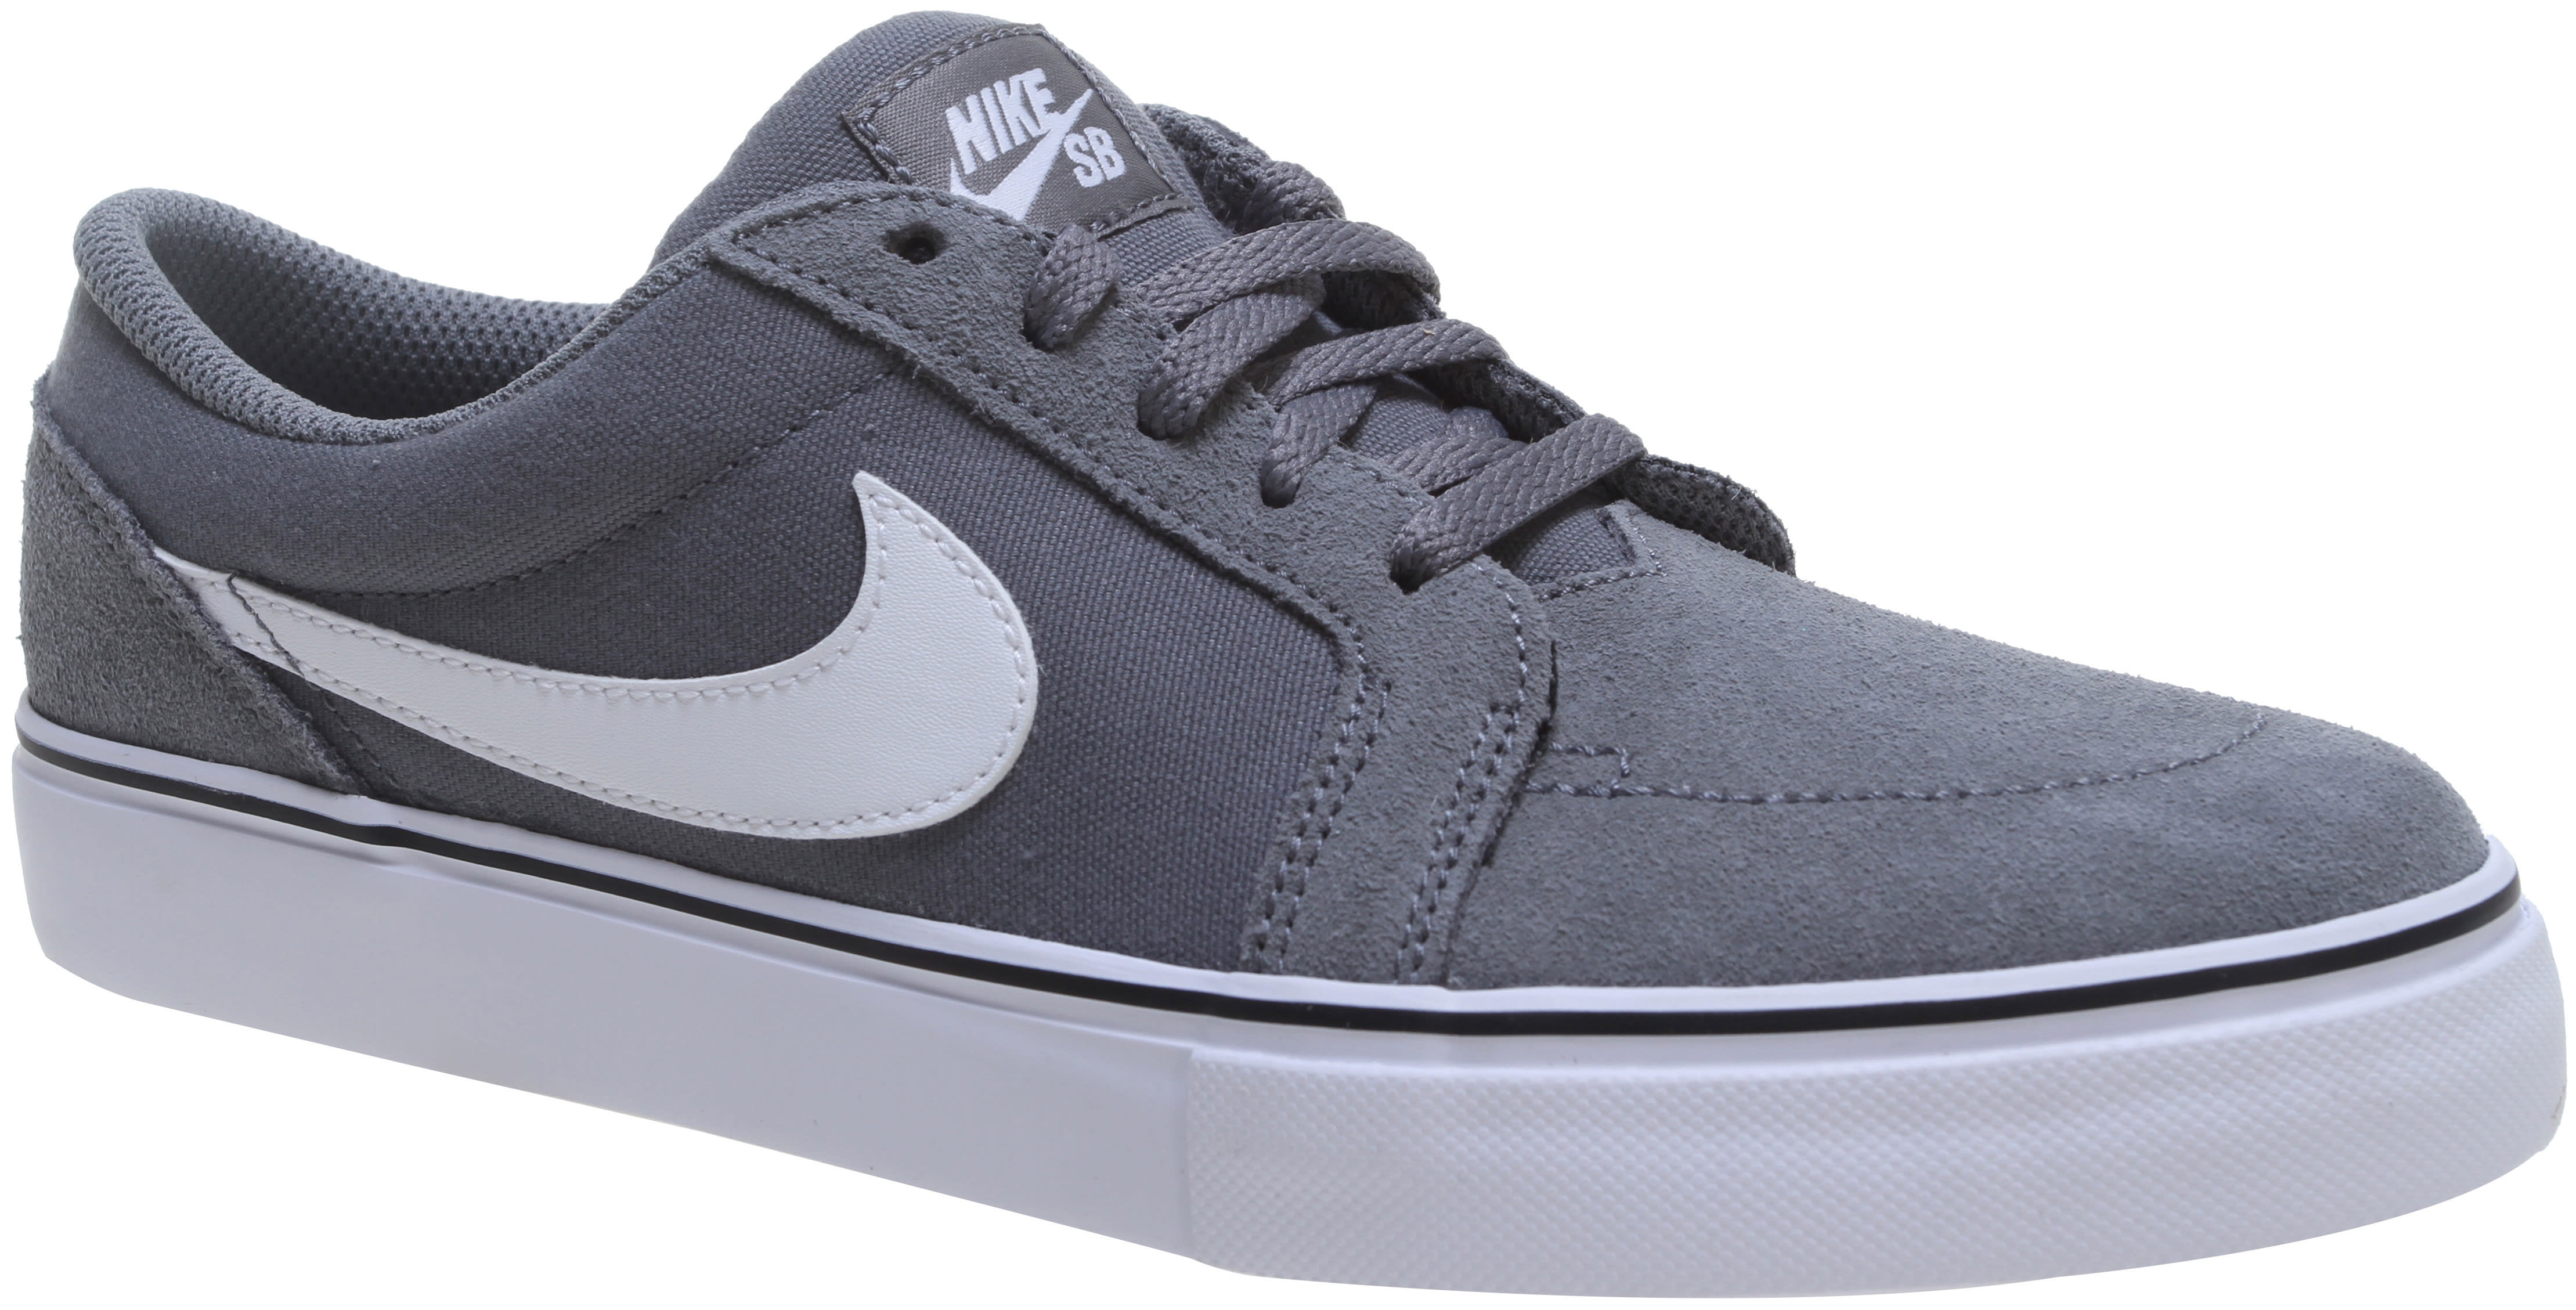 Nike SB Satire II (GS) Skate Shoes - thumbnail 2 bd910a45a43fe